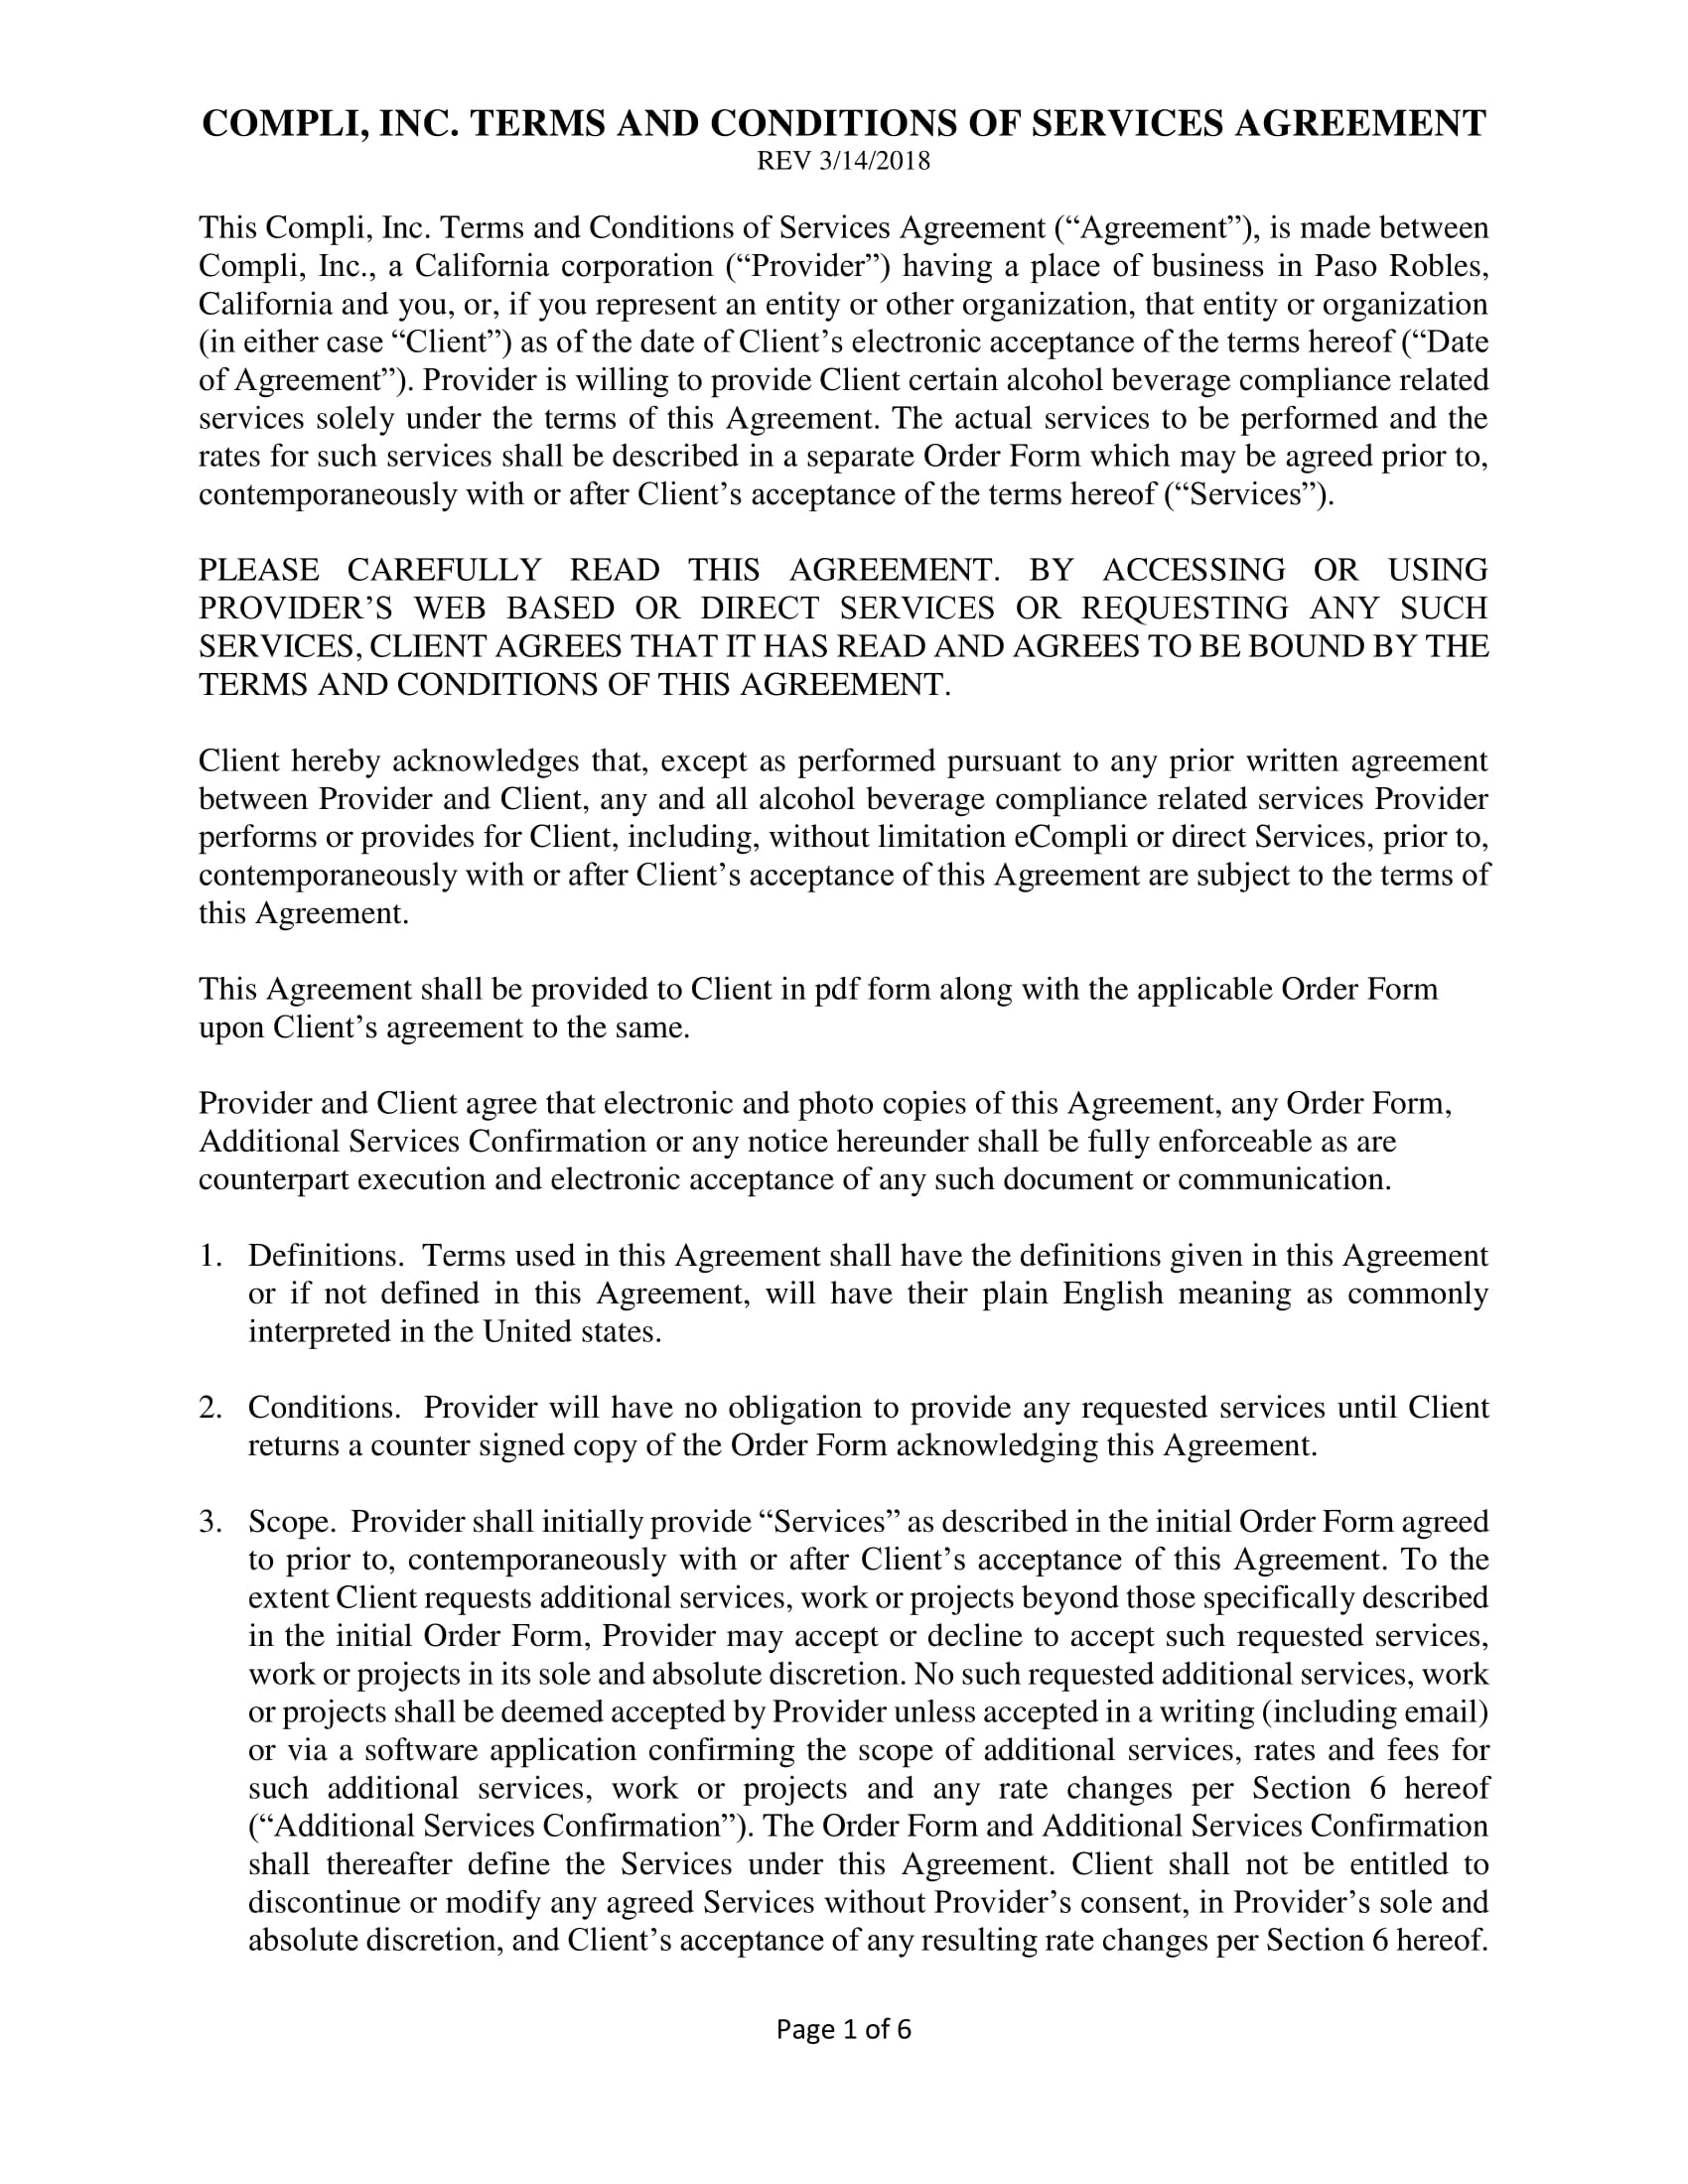 9 Service Agreement Contract Template Examples Pdf